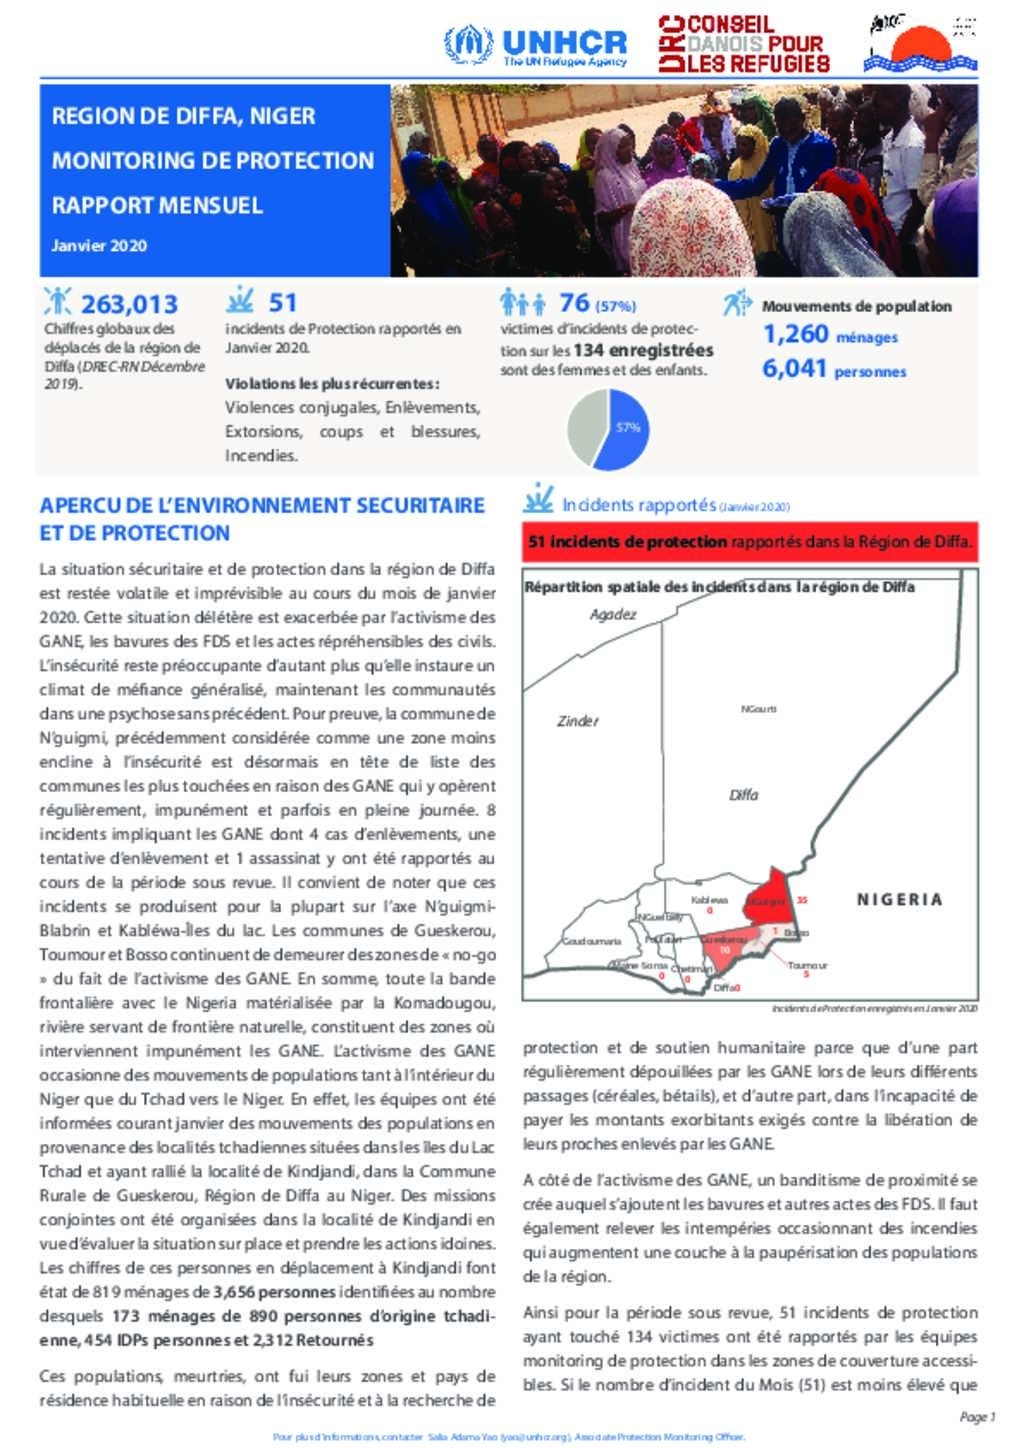 Document - Unhcr Niger, Diffa So : Monitoring De Protection